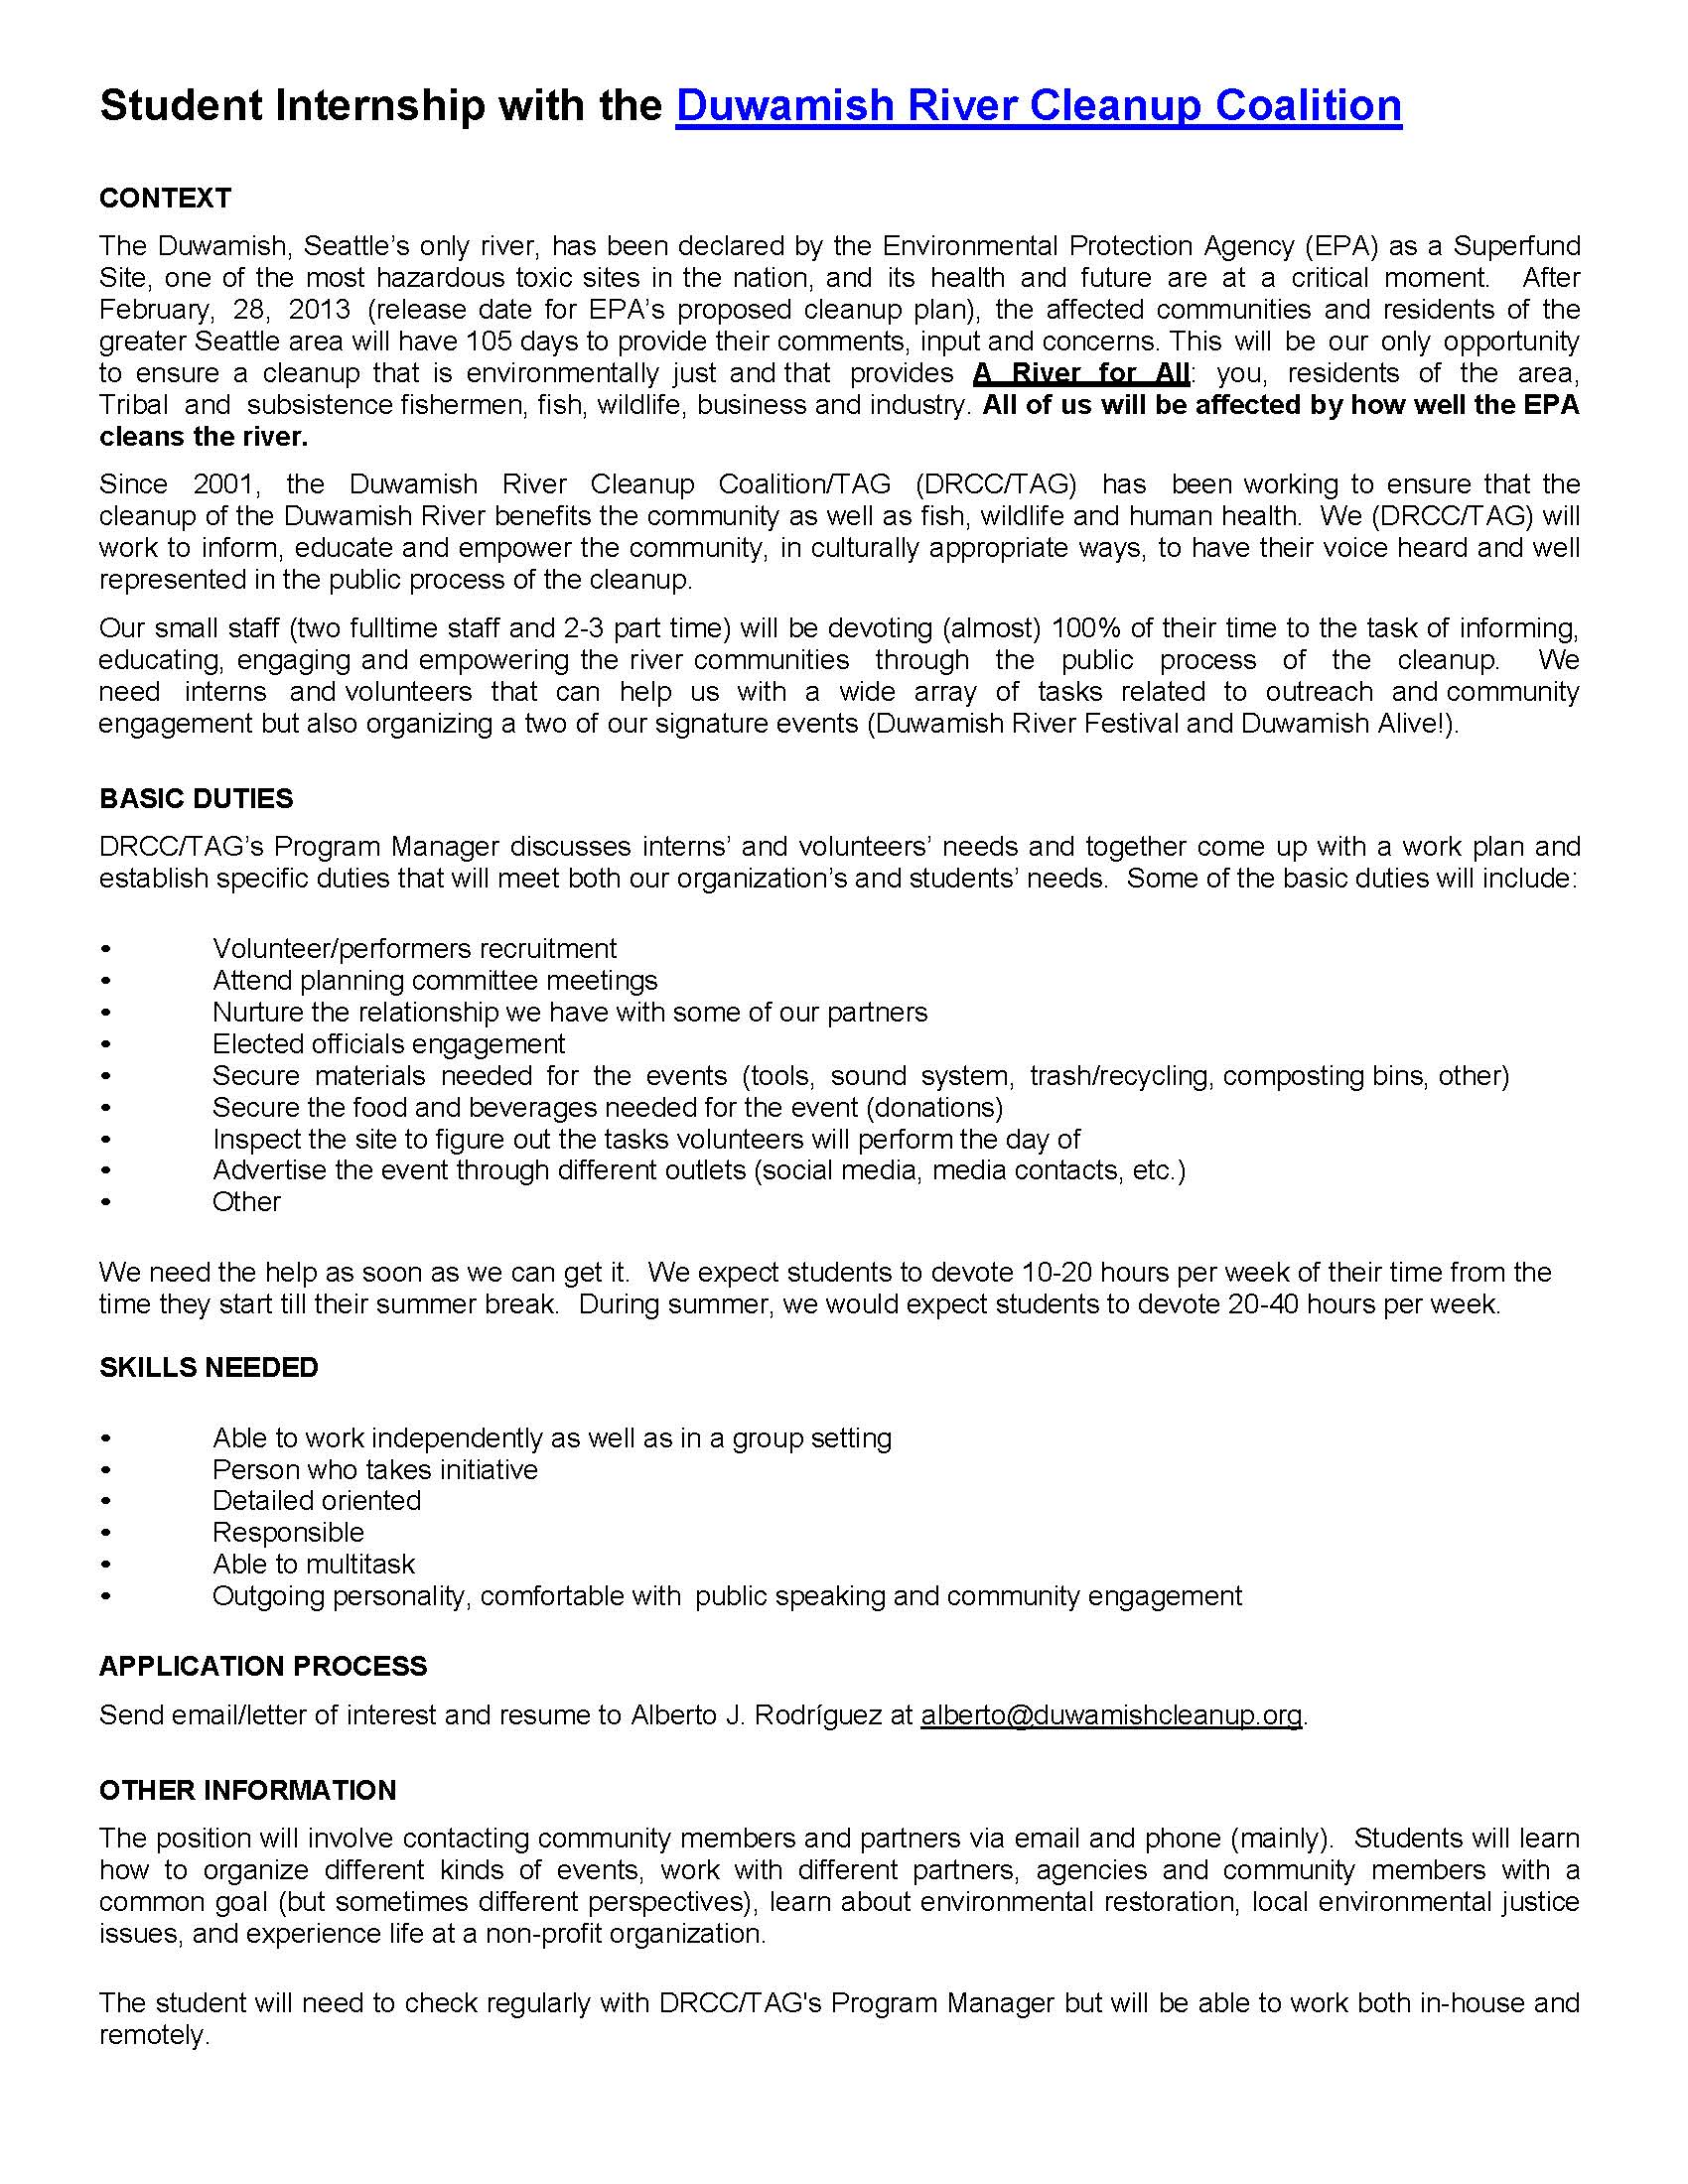 boston consulting group internship cover letter